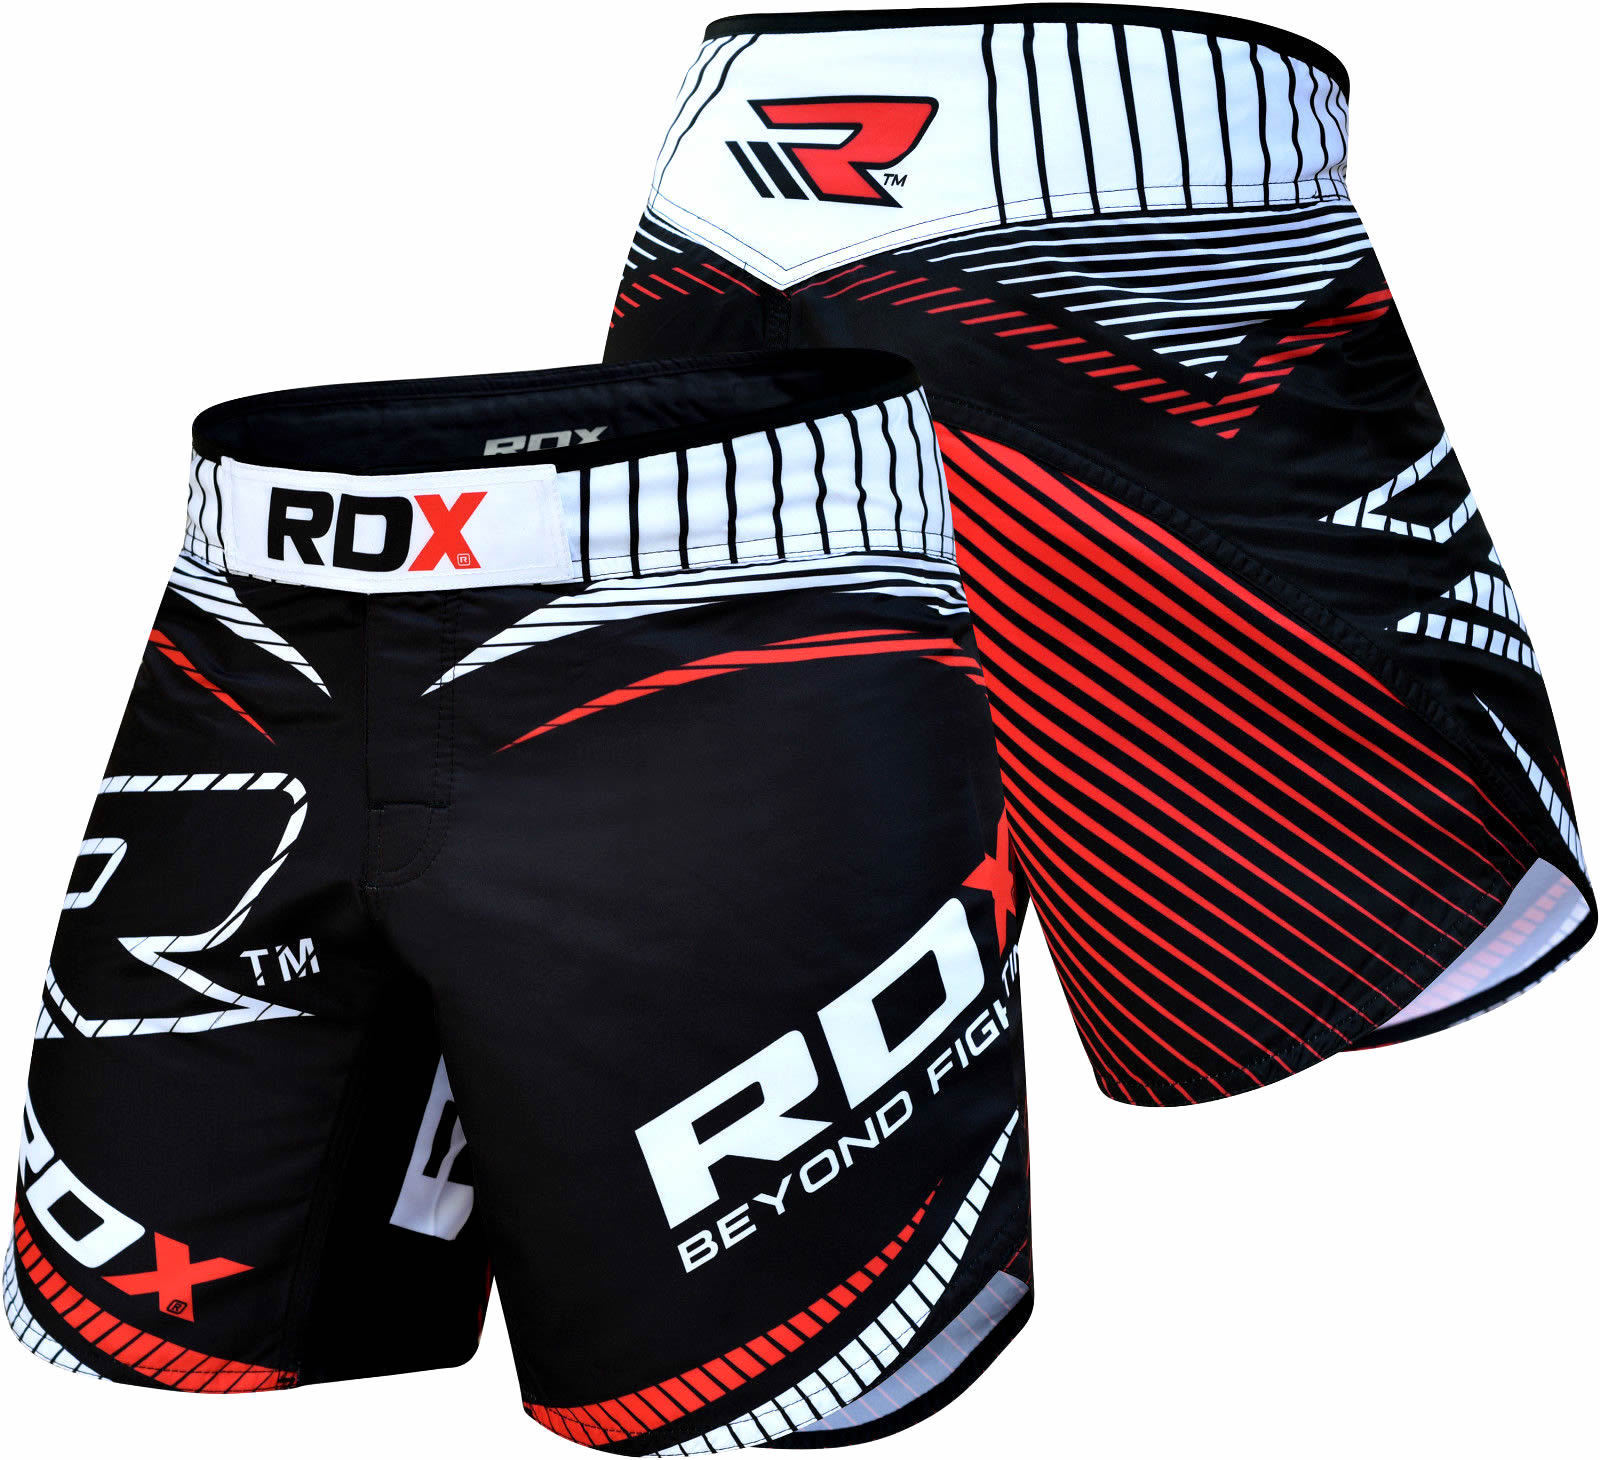 Shorts Rdx Mma Fight Shorts Mens Gym Wearkick Boxing Training Muay Thai Fighting Ca Selected Material Men's Clothing